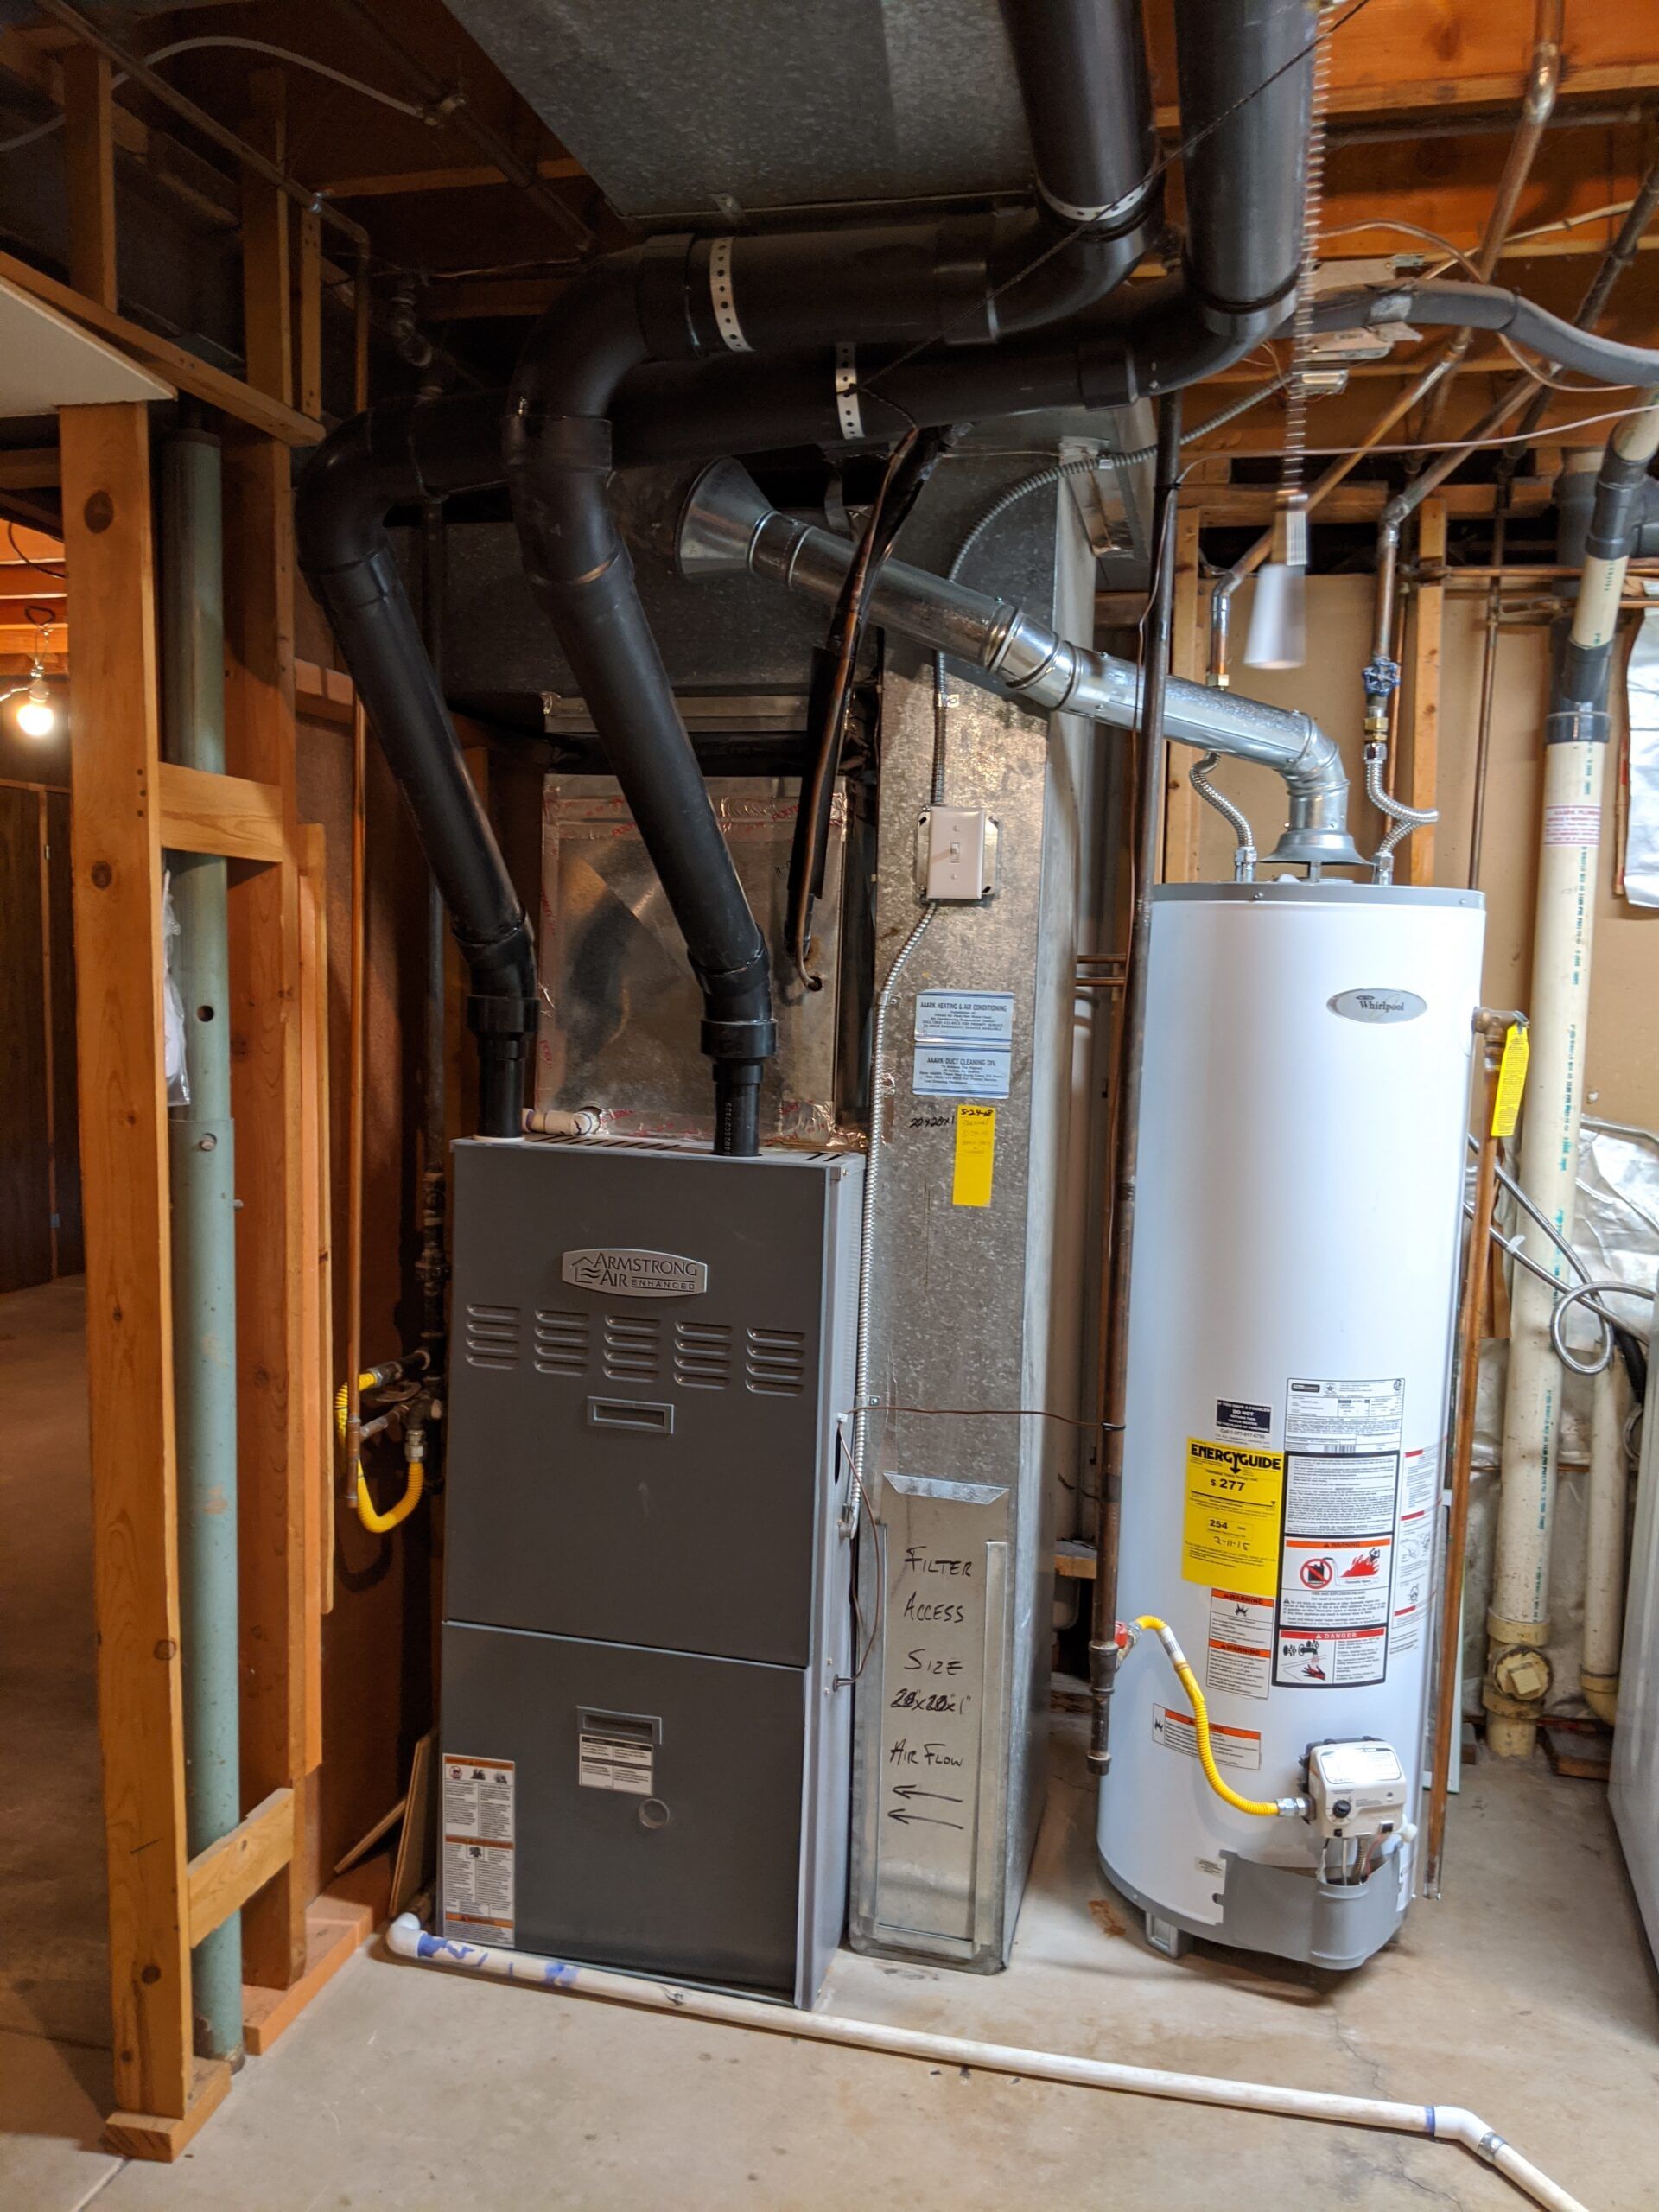 Major appliances, like the furnace and water heater, are inspected to make sure they operate correctly and show signs of being maintained. In addition, an inspector may note potential code or safety violations, such as insufficient venting for gas appliances.